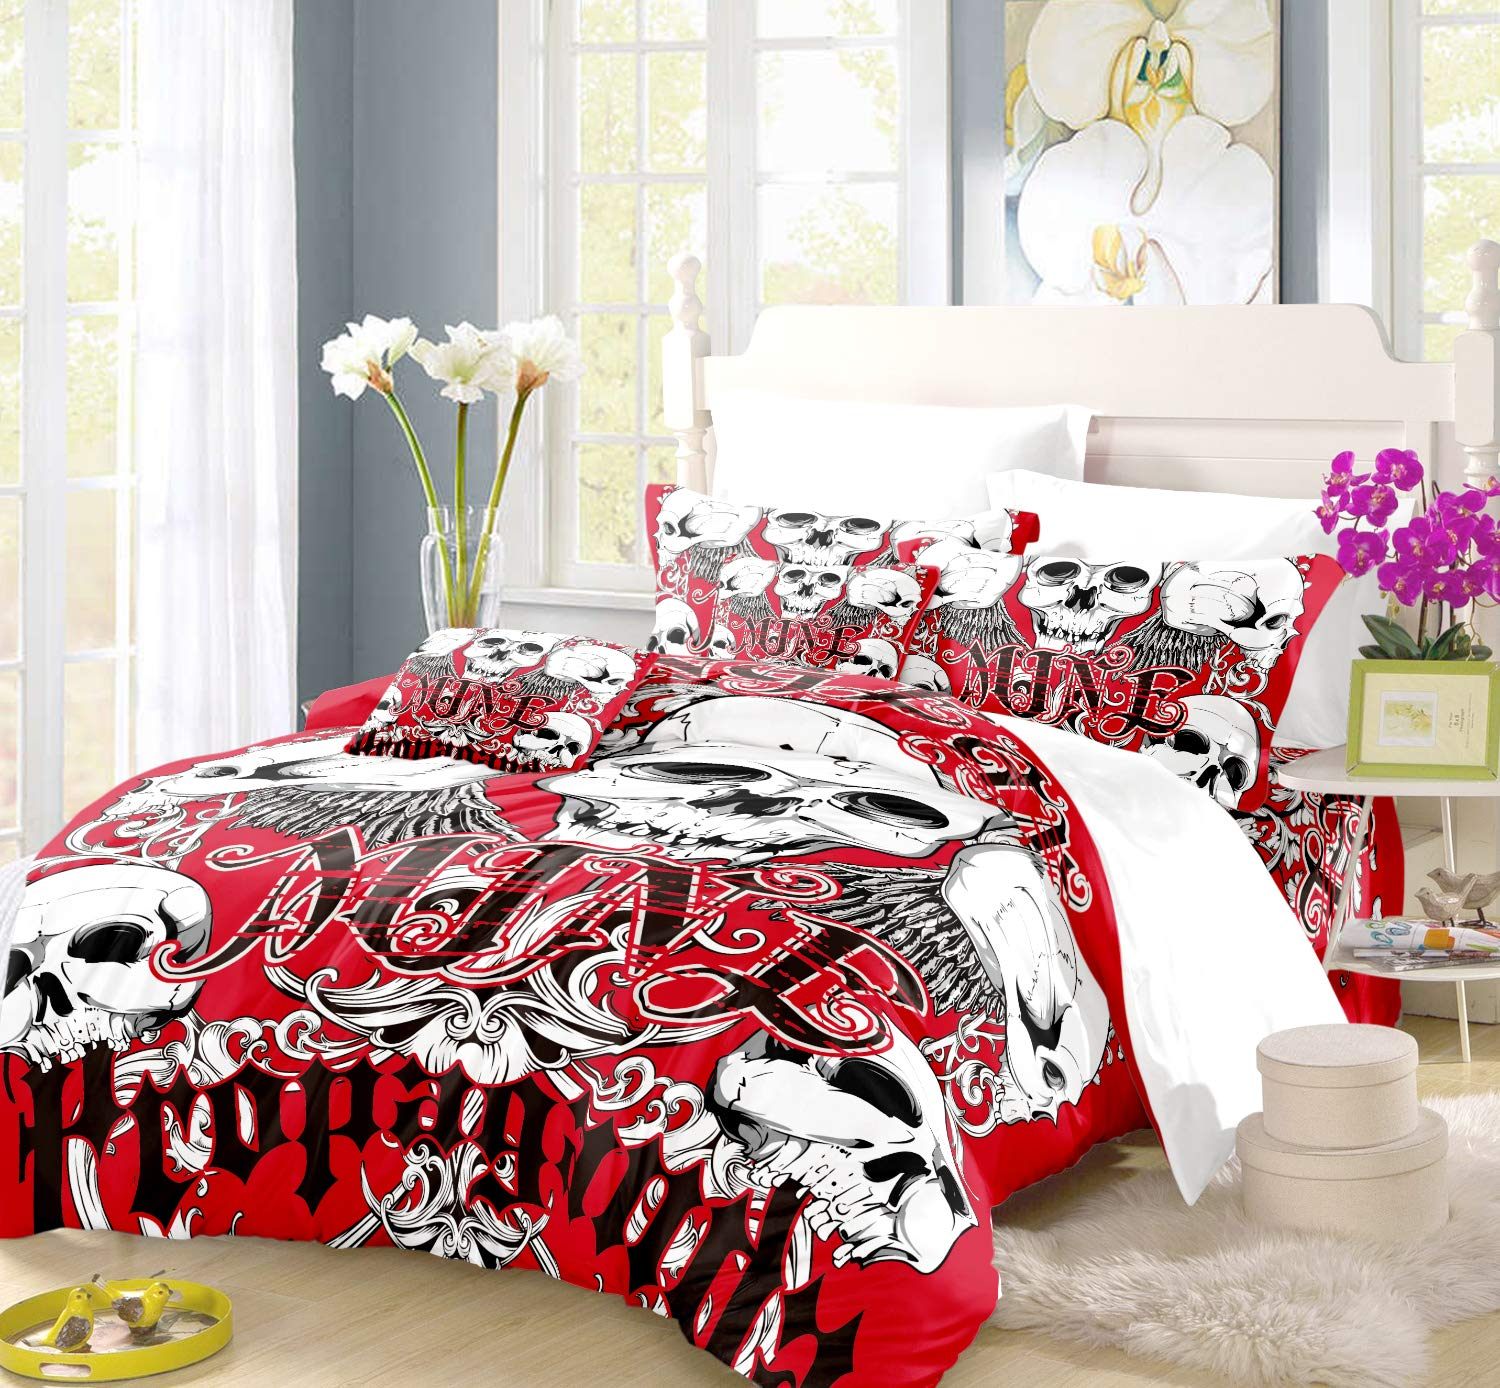 REALIN Halloween Bedding Skull in Flame Duvet Cover Set Horror Double Gun Red Rose Bed Sets,2/3/4PCS Microfiber Quilt Covers/Sheets/Pillow Shams,Twin/Full/Queen/King Size